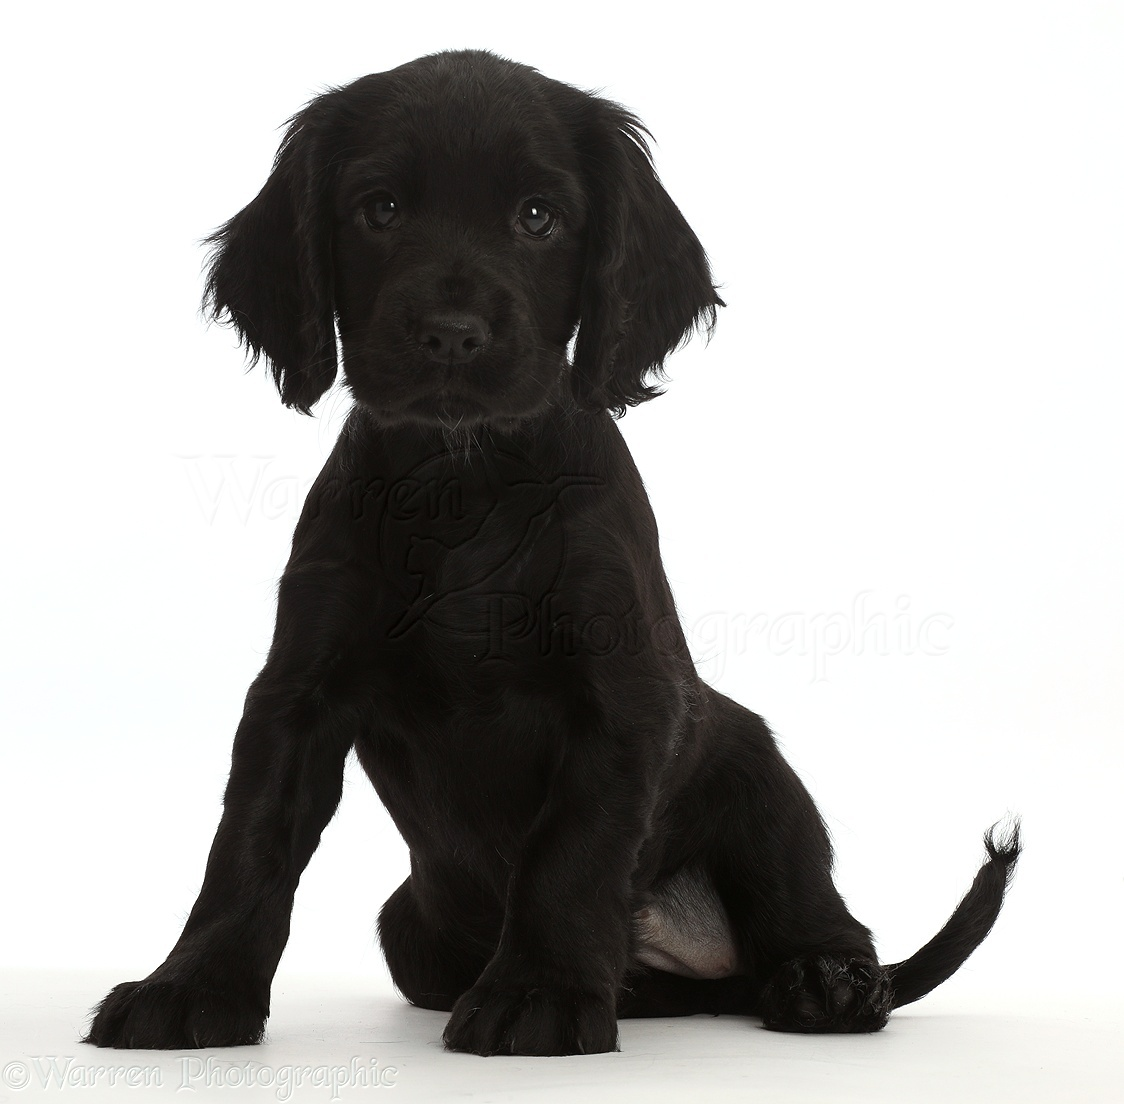 Dog Black Cocker Spaniel Puppy Photo Wp45902